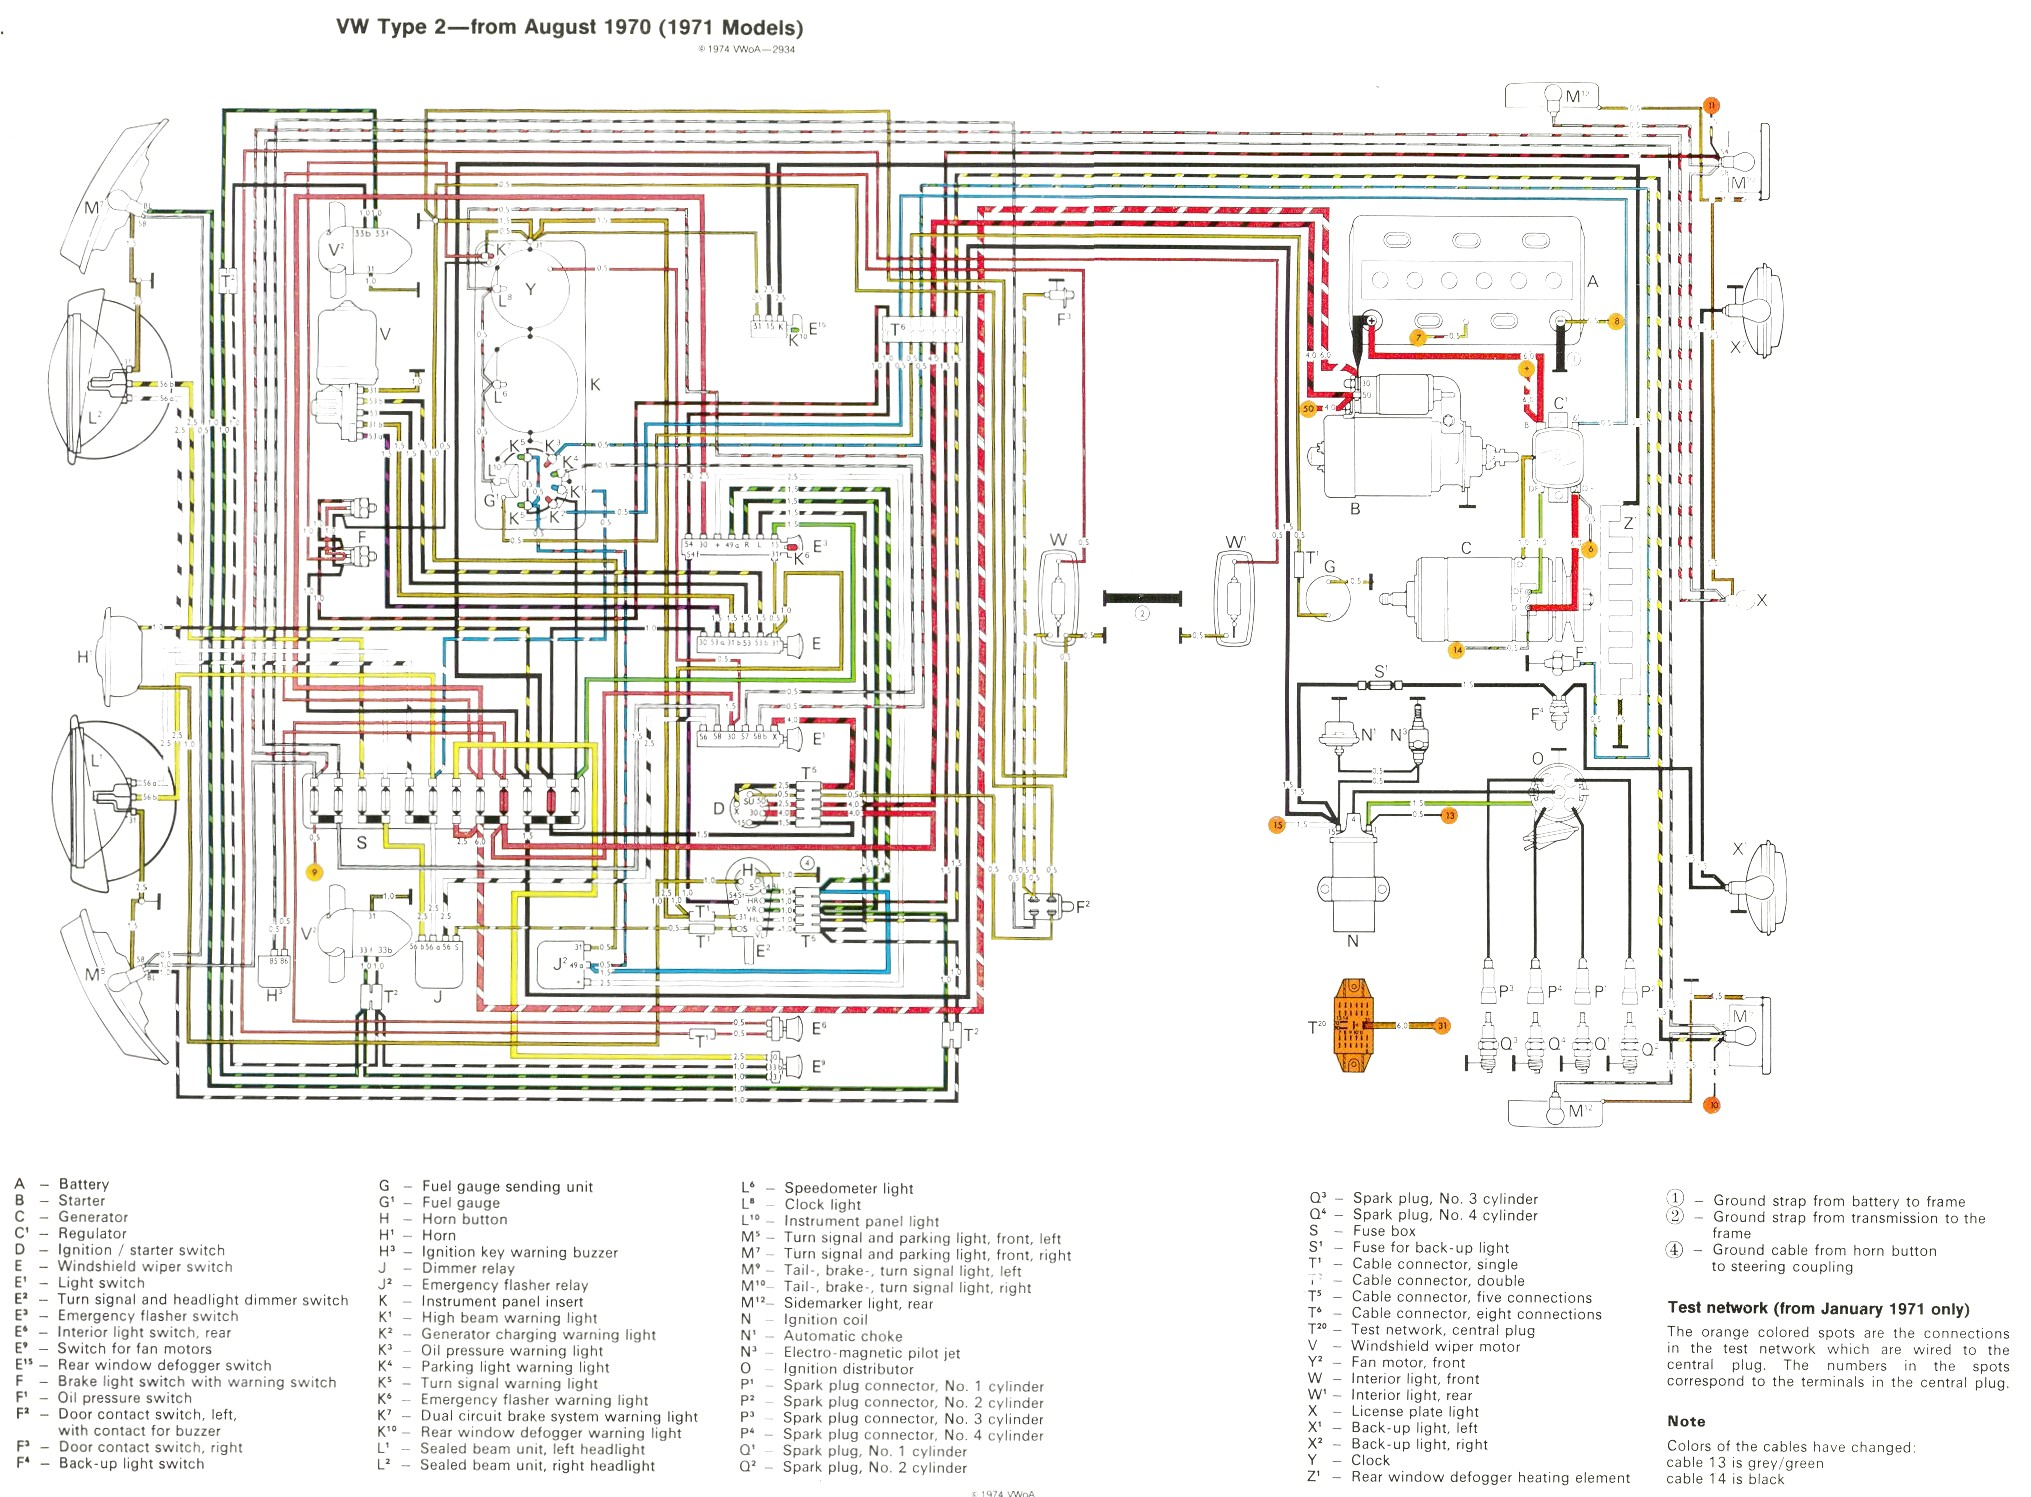 bus 70 71 baywindow fusebox layout 1971 vw bus wiring diagram at nearapp.co